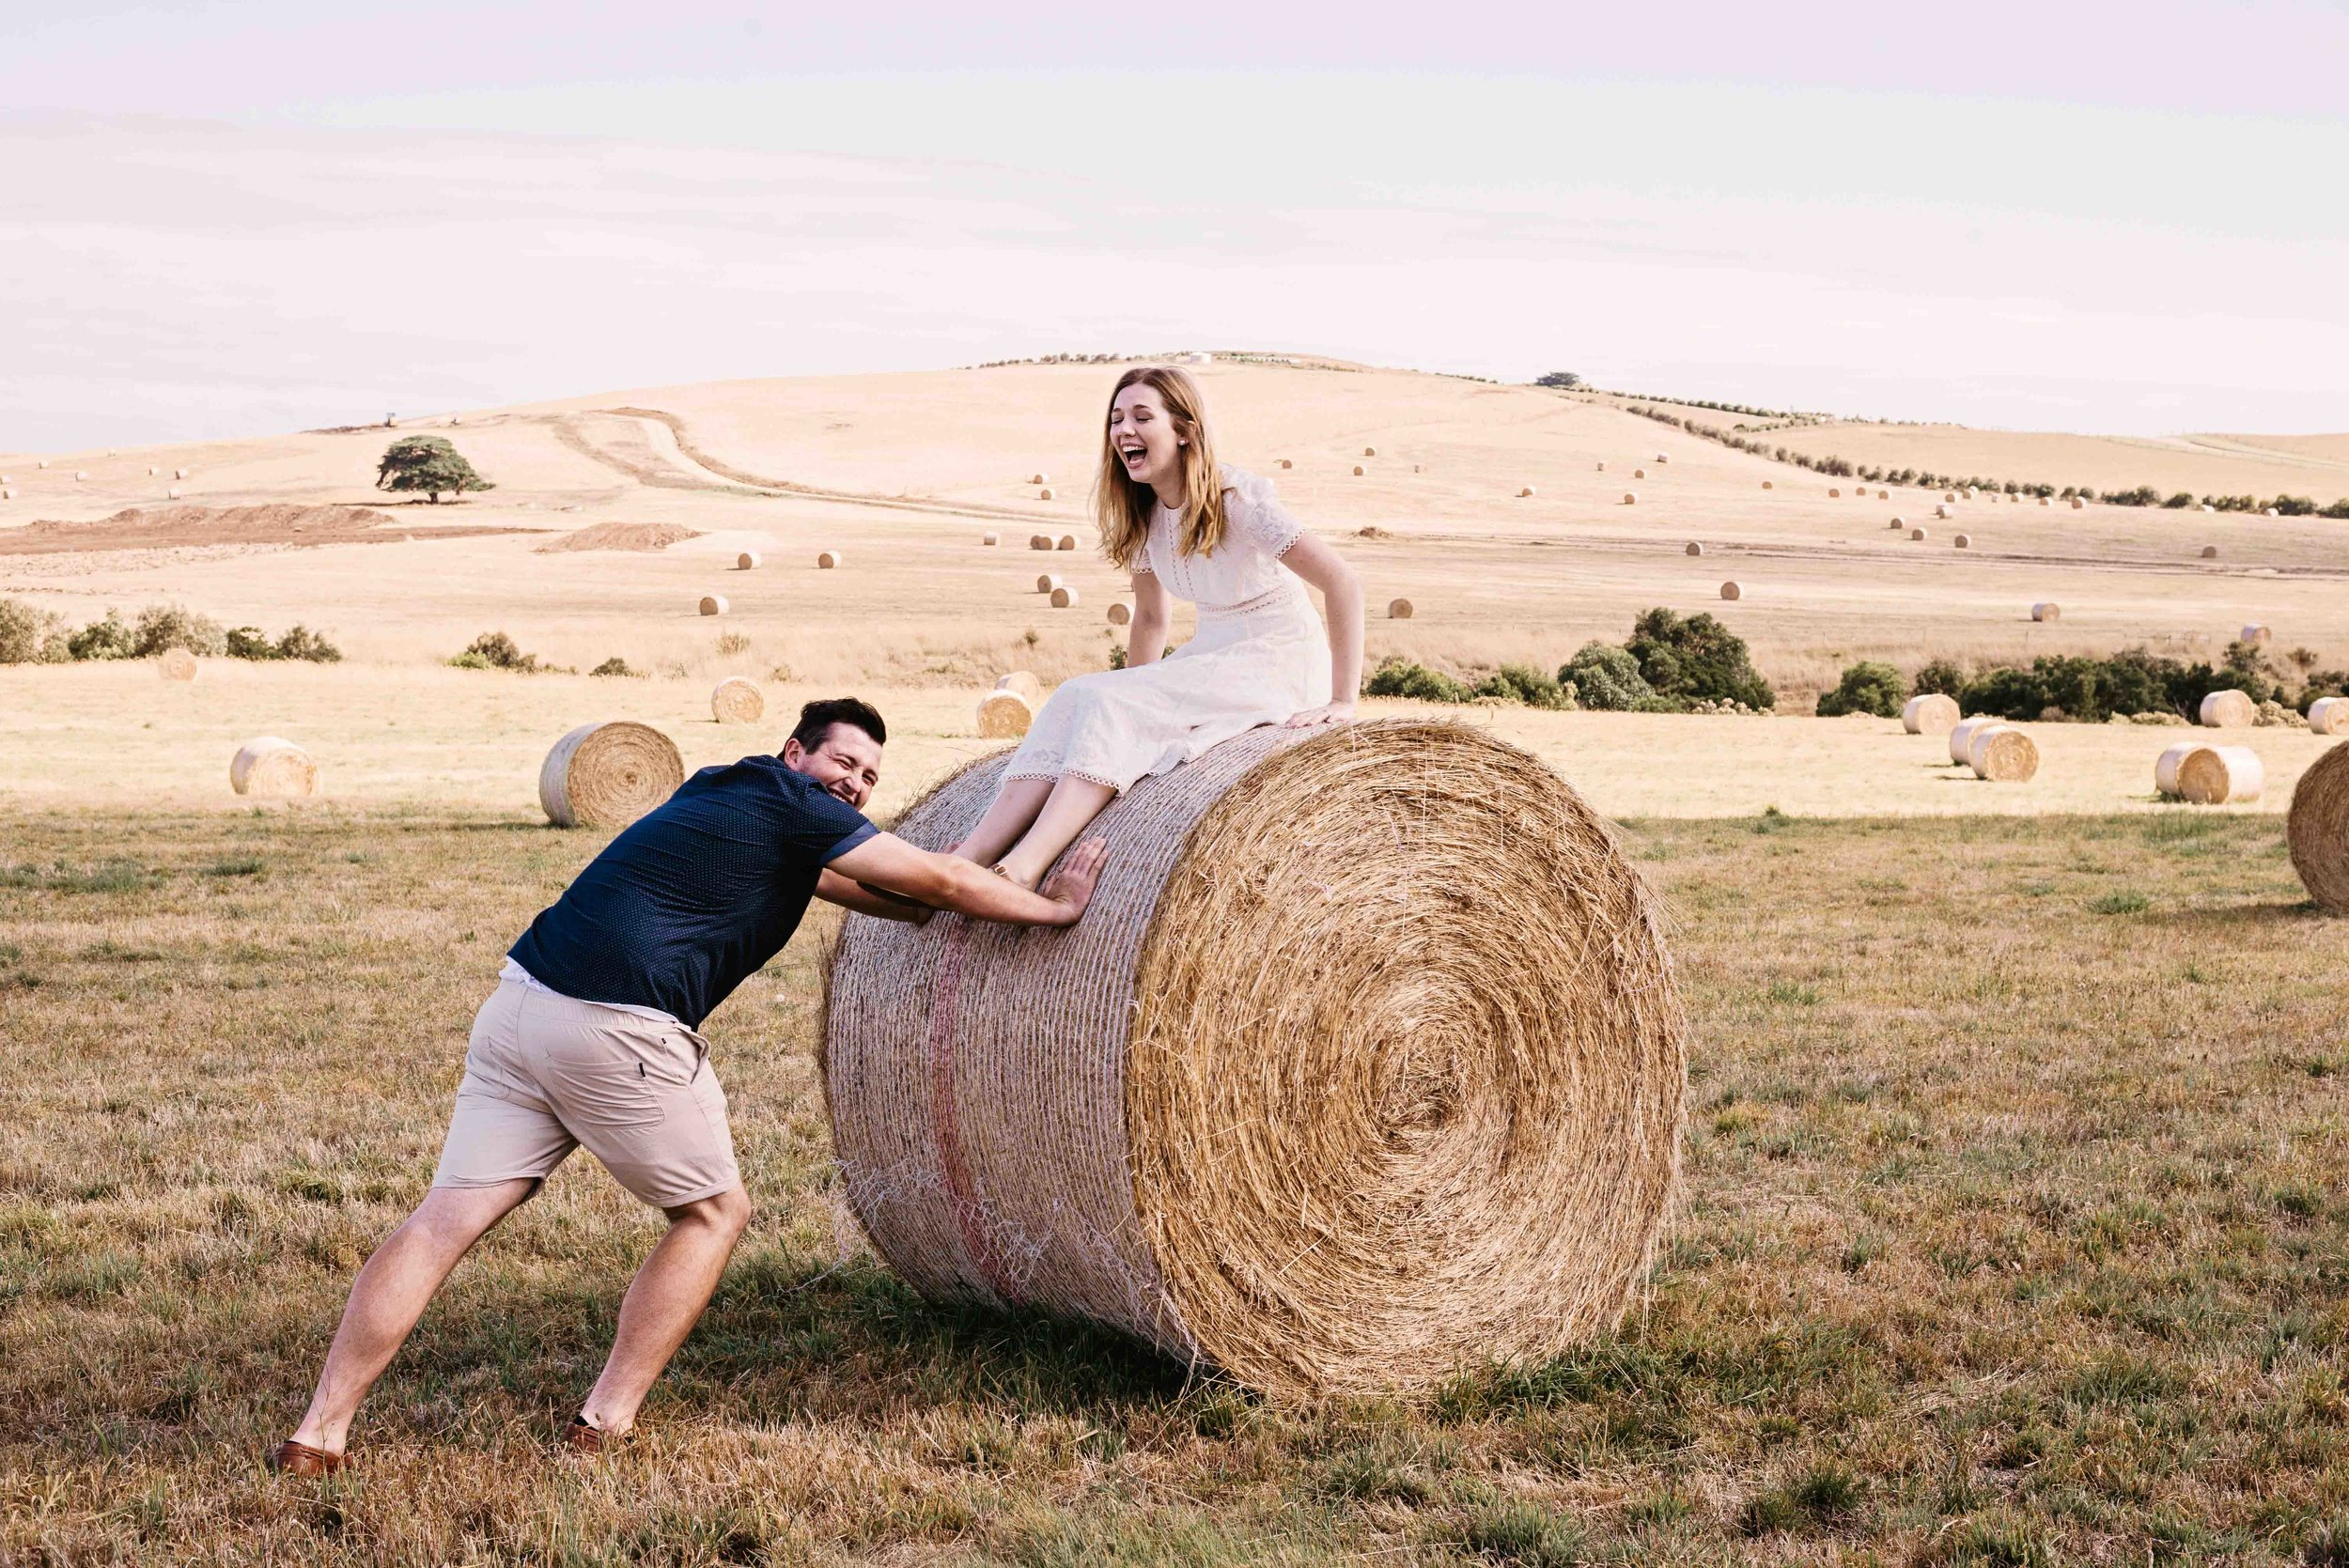 marissa-jade-photography-mornington-peninsula-wedding-photographer-natural-engagement-photography-red-hill-76.jpg